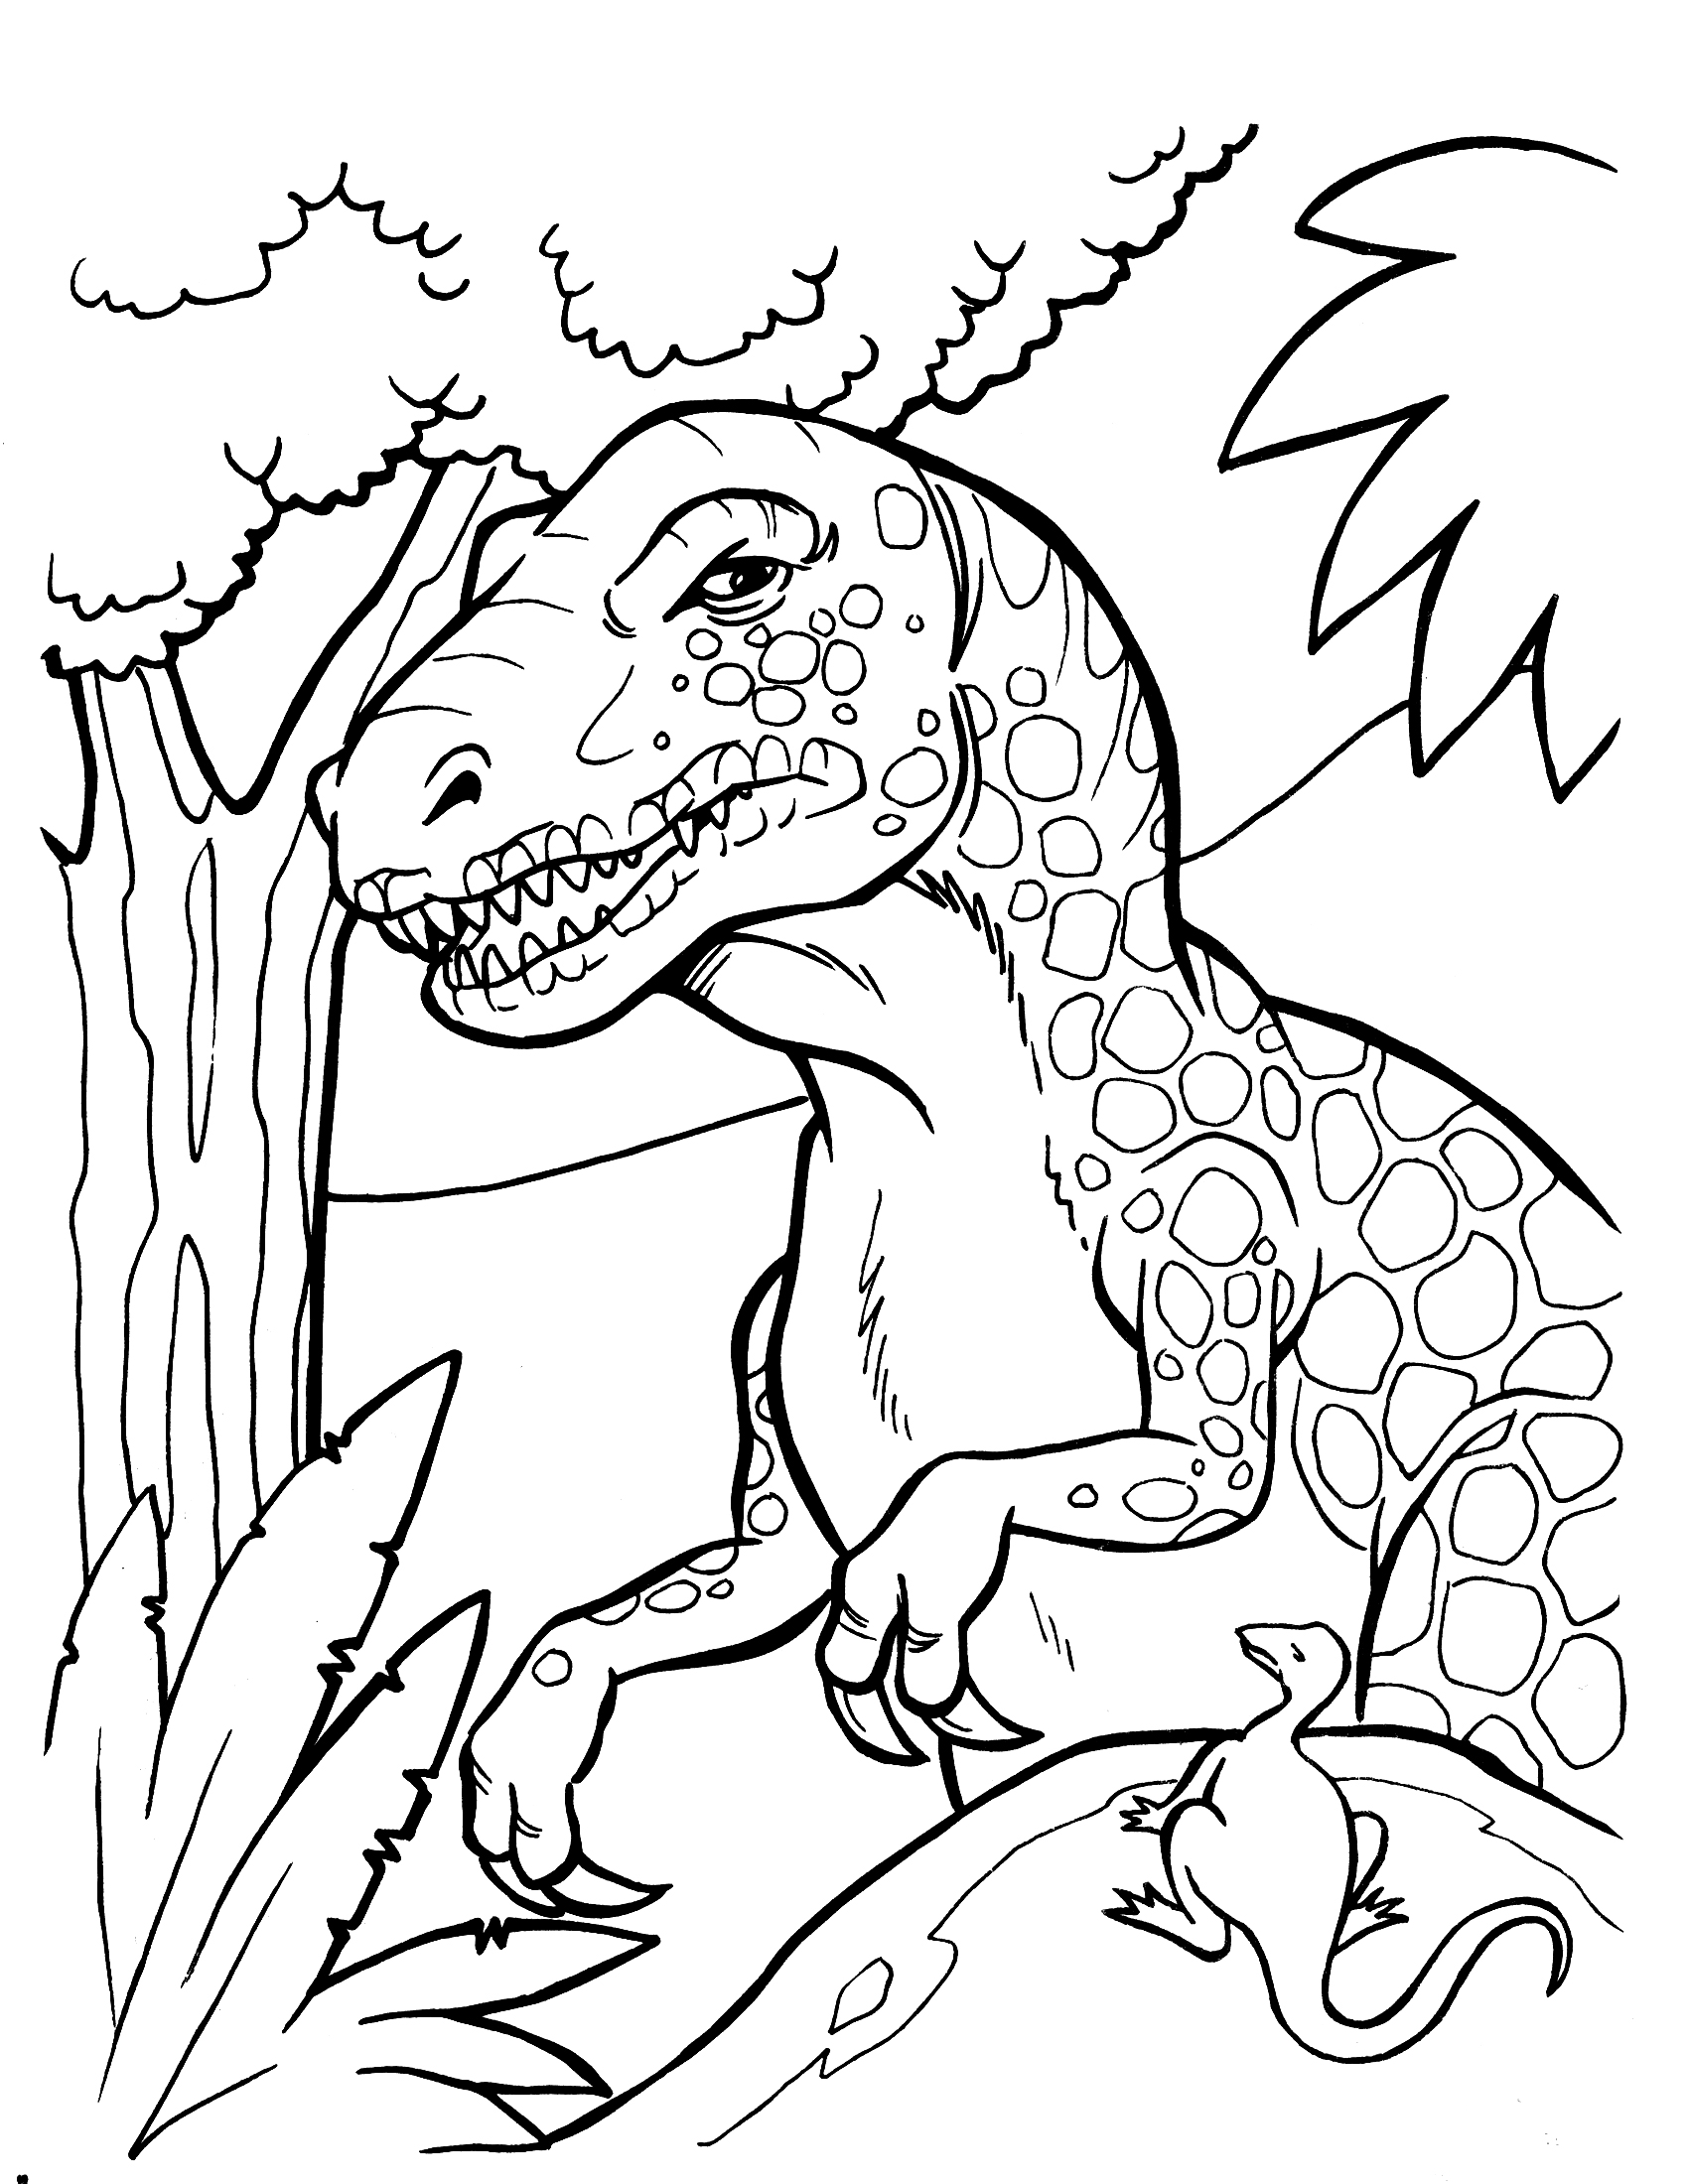 Dinosaur coloring pages to download